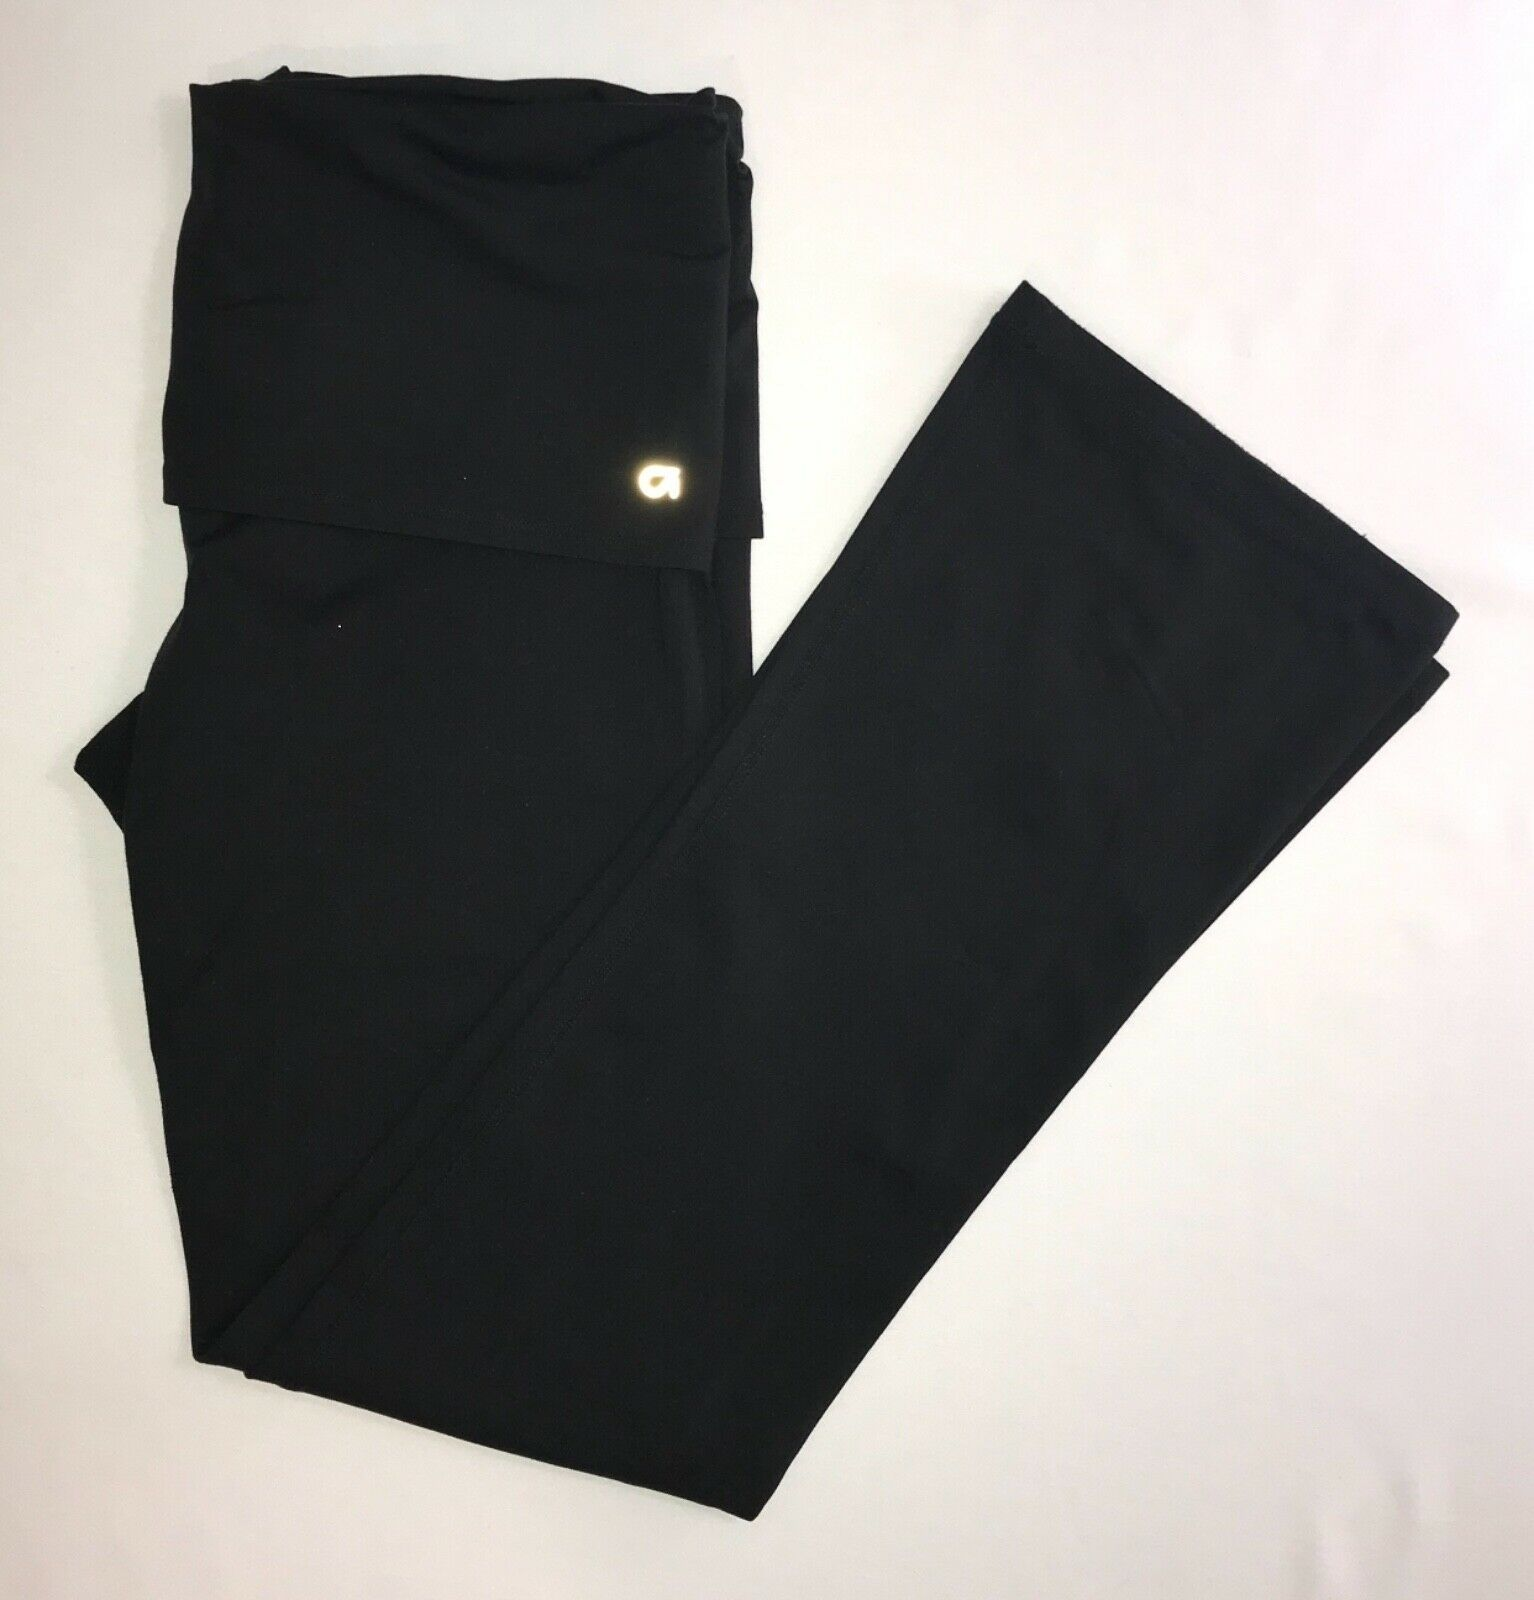 Primary image for Gap BodyFit G Dance Straight Leg Yoga/Running Pants black Large for Movement